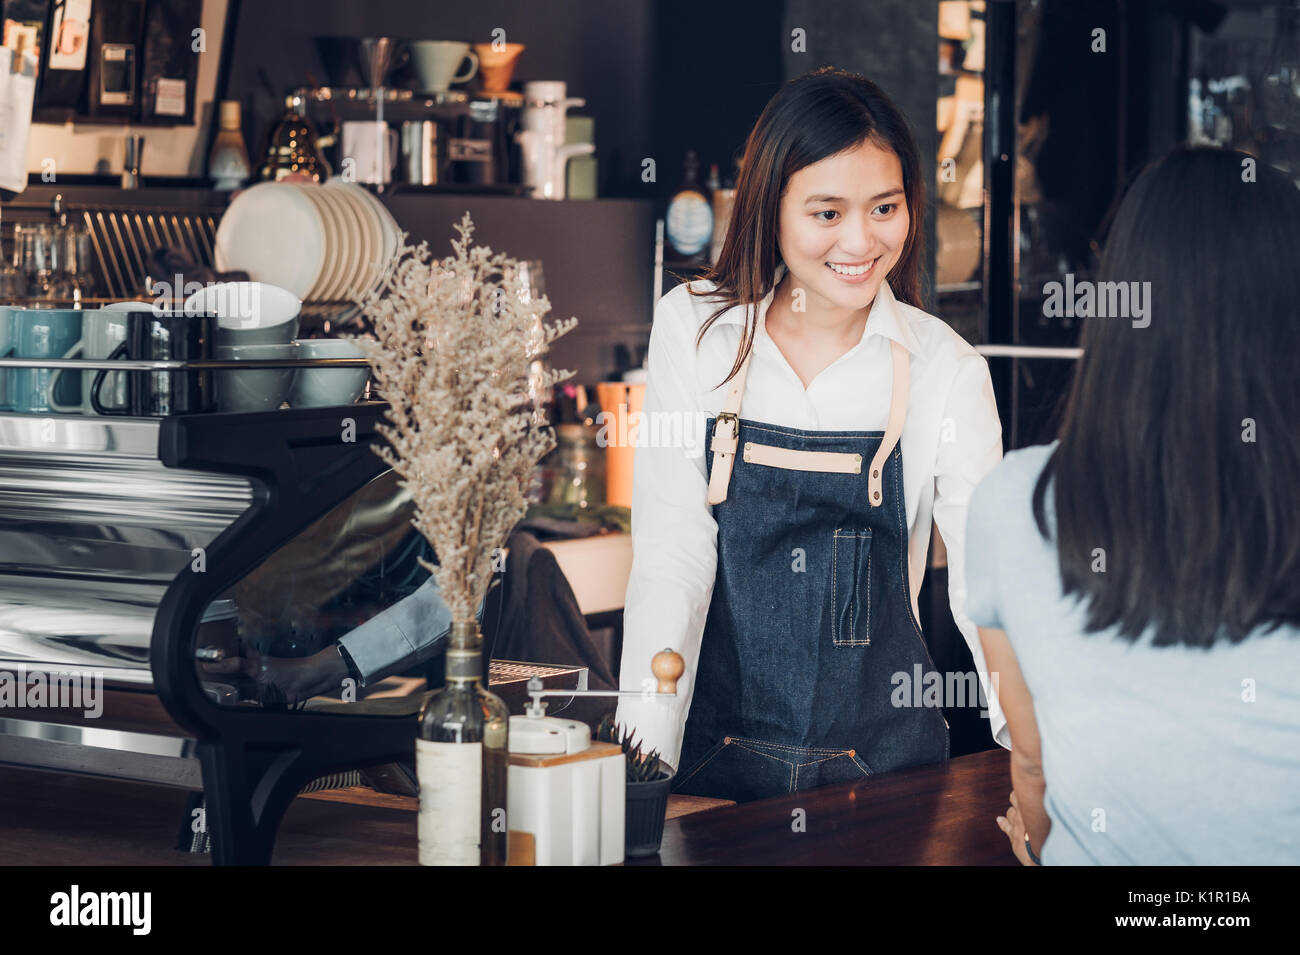 Asian woman barista wear jean apron holding coffee cup served to customer at bar counter with smile emotion,Cafe restaurant service concept,Owner smal - Stock Image